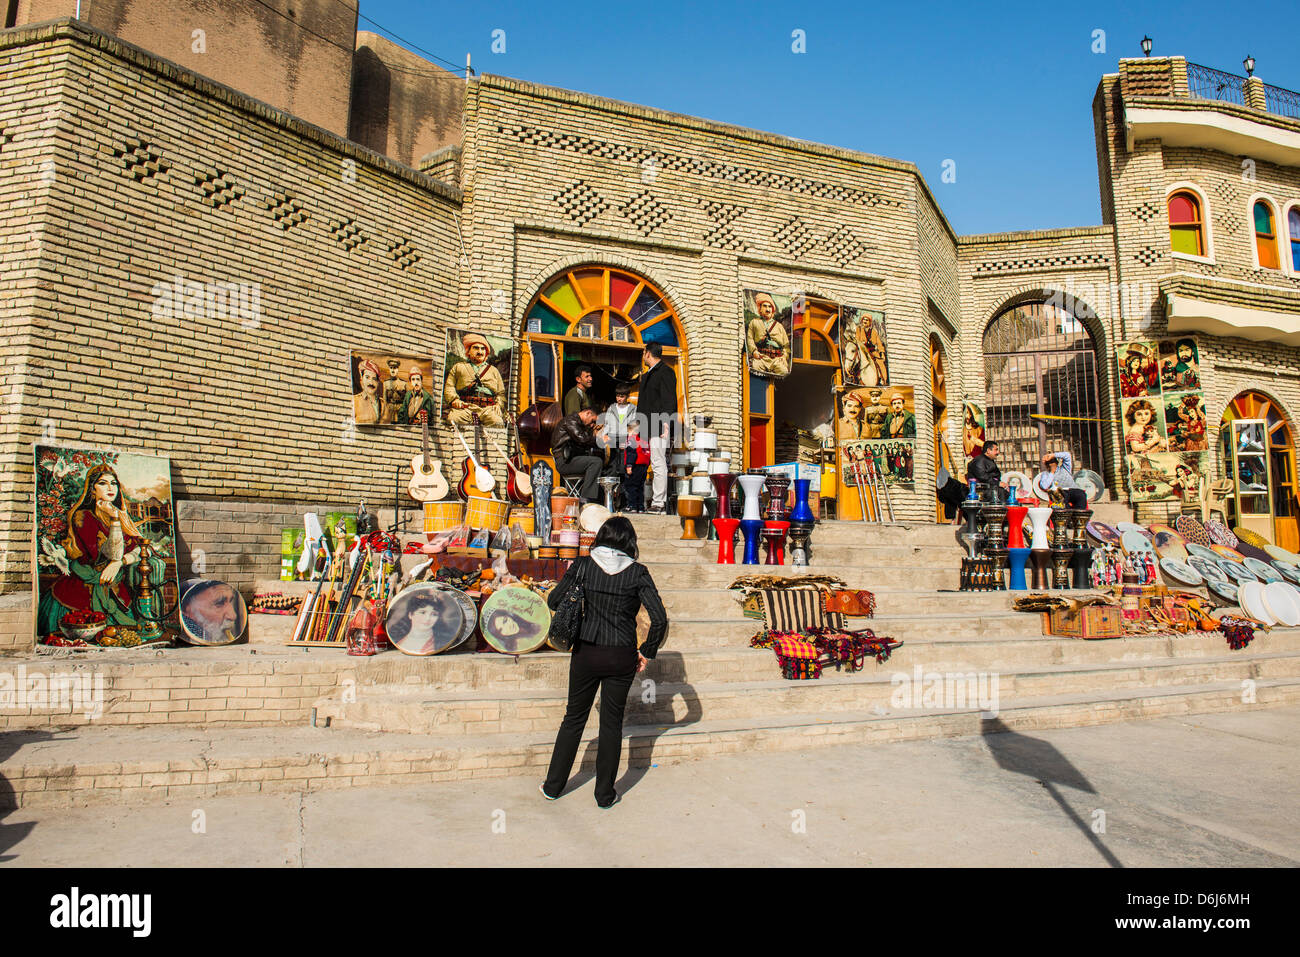 Kurdish souvenirs for sale below the citadel of Erbil (Hawler), capital of Iraq Kurdistan, Iraq, Middle East - Stock Image